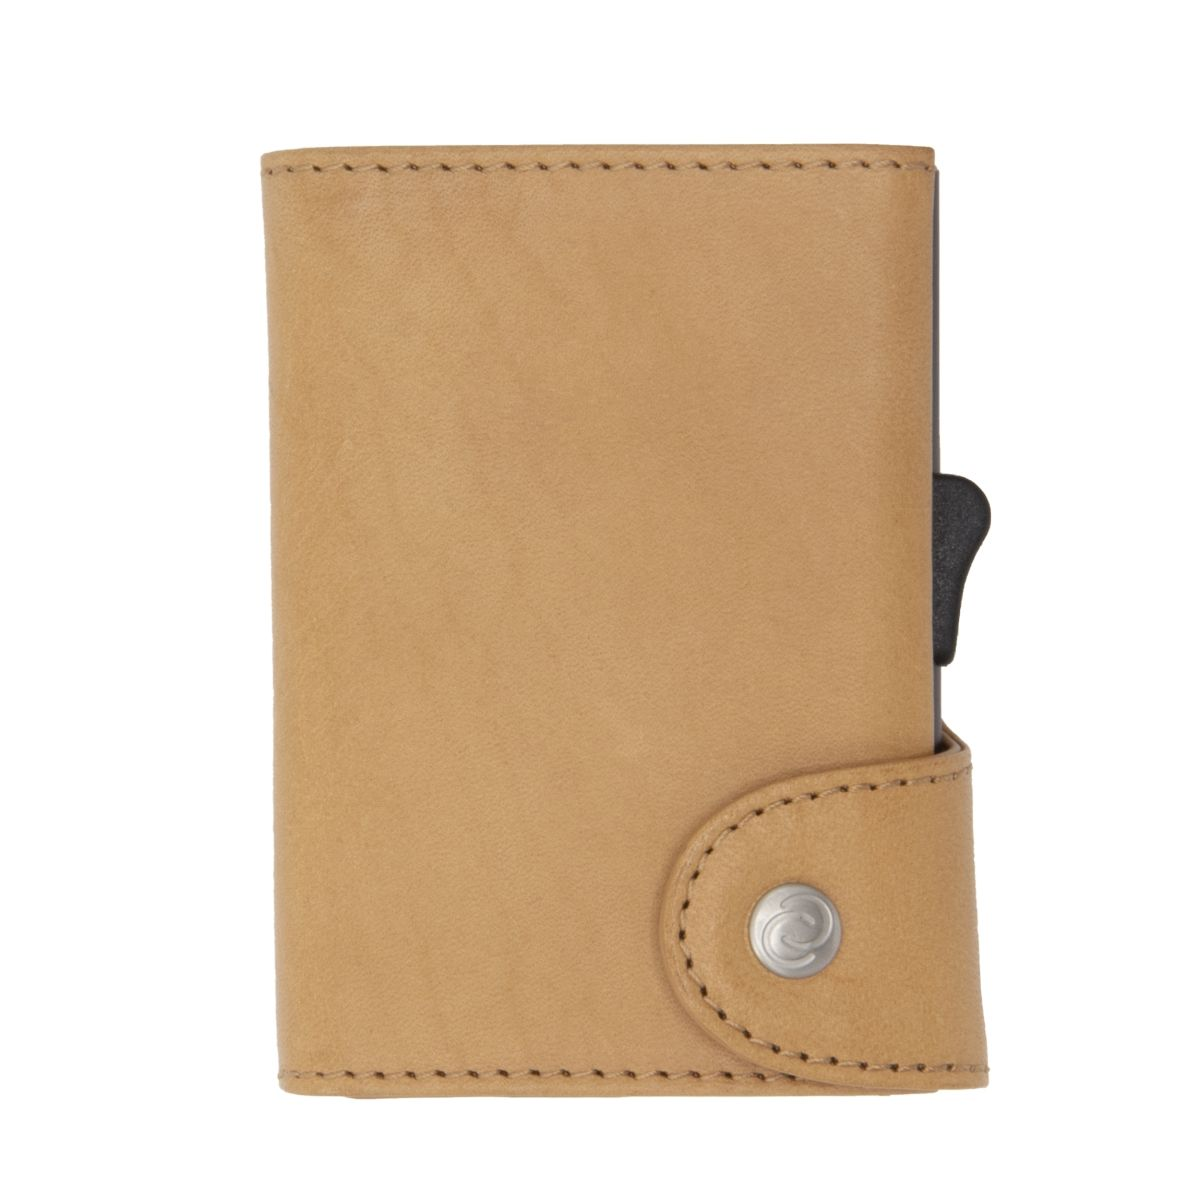 XL Aluminum Wallet with Vegetable Genuine Leather - Saddle